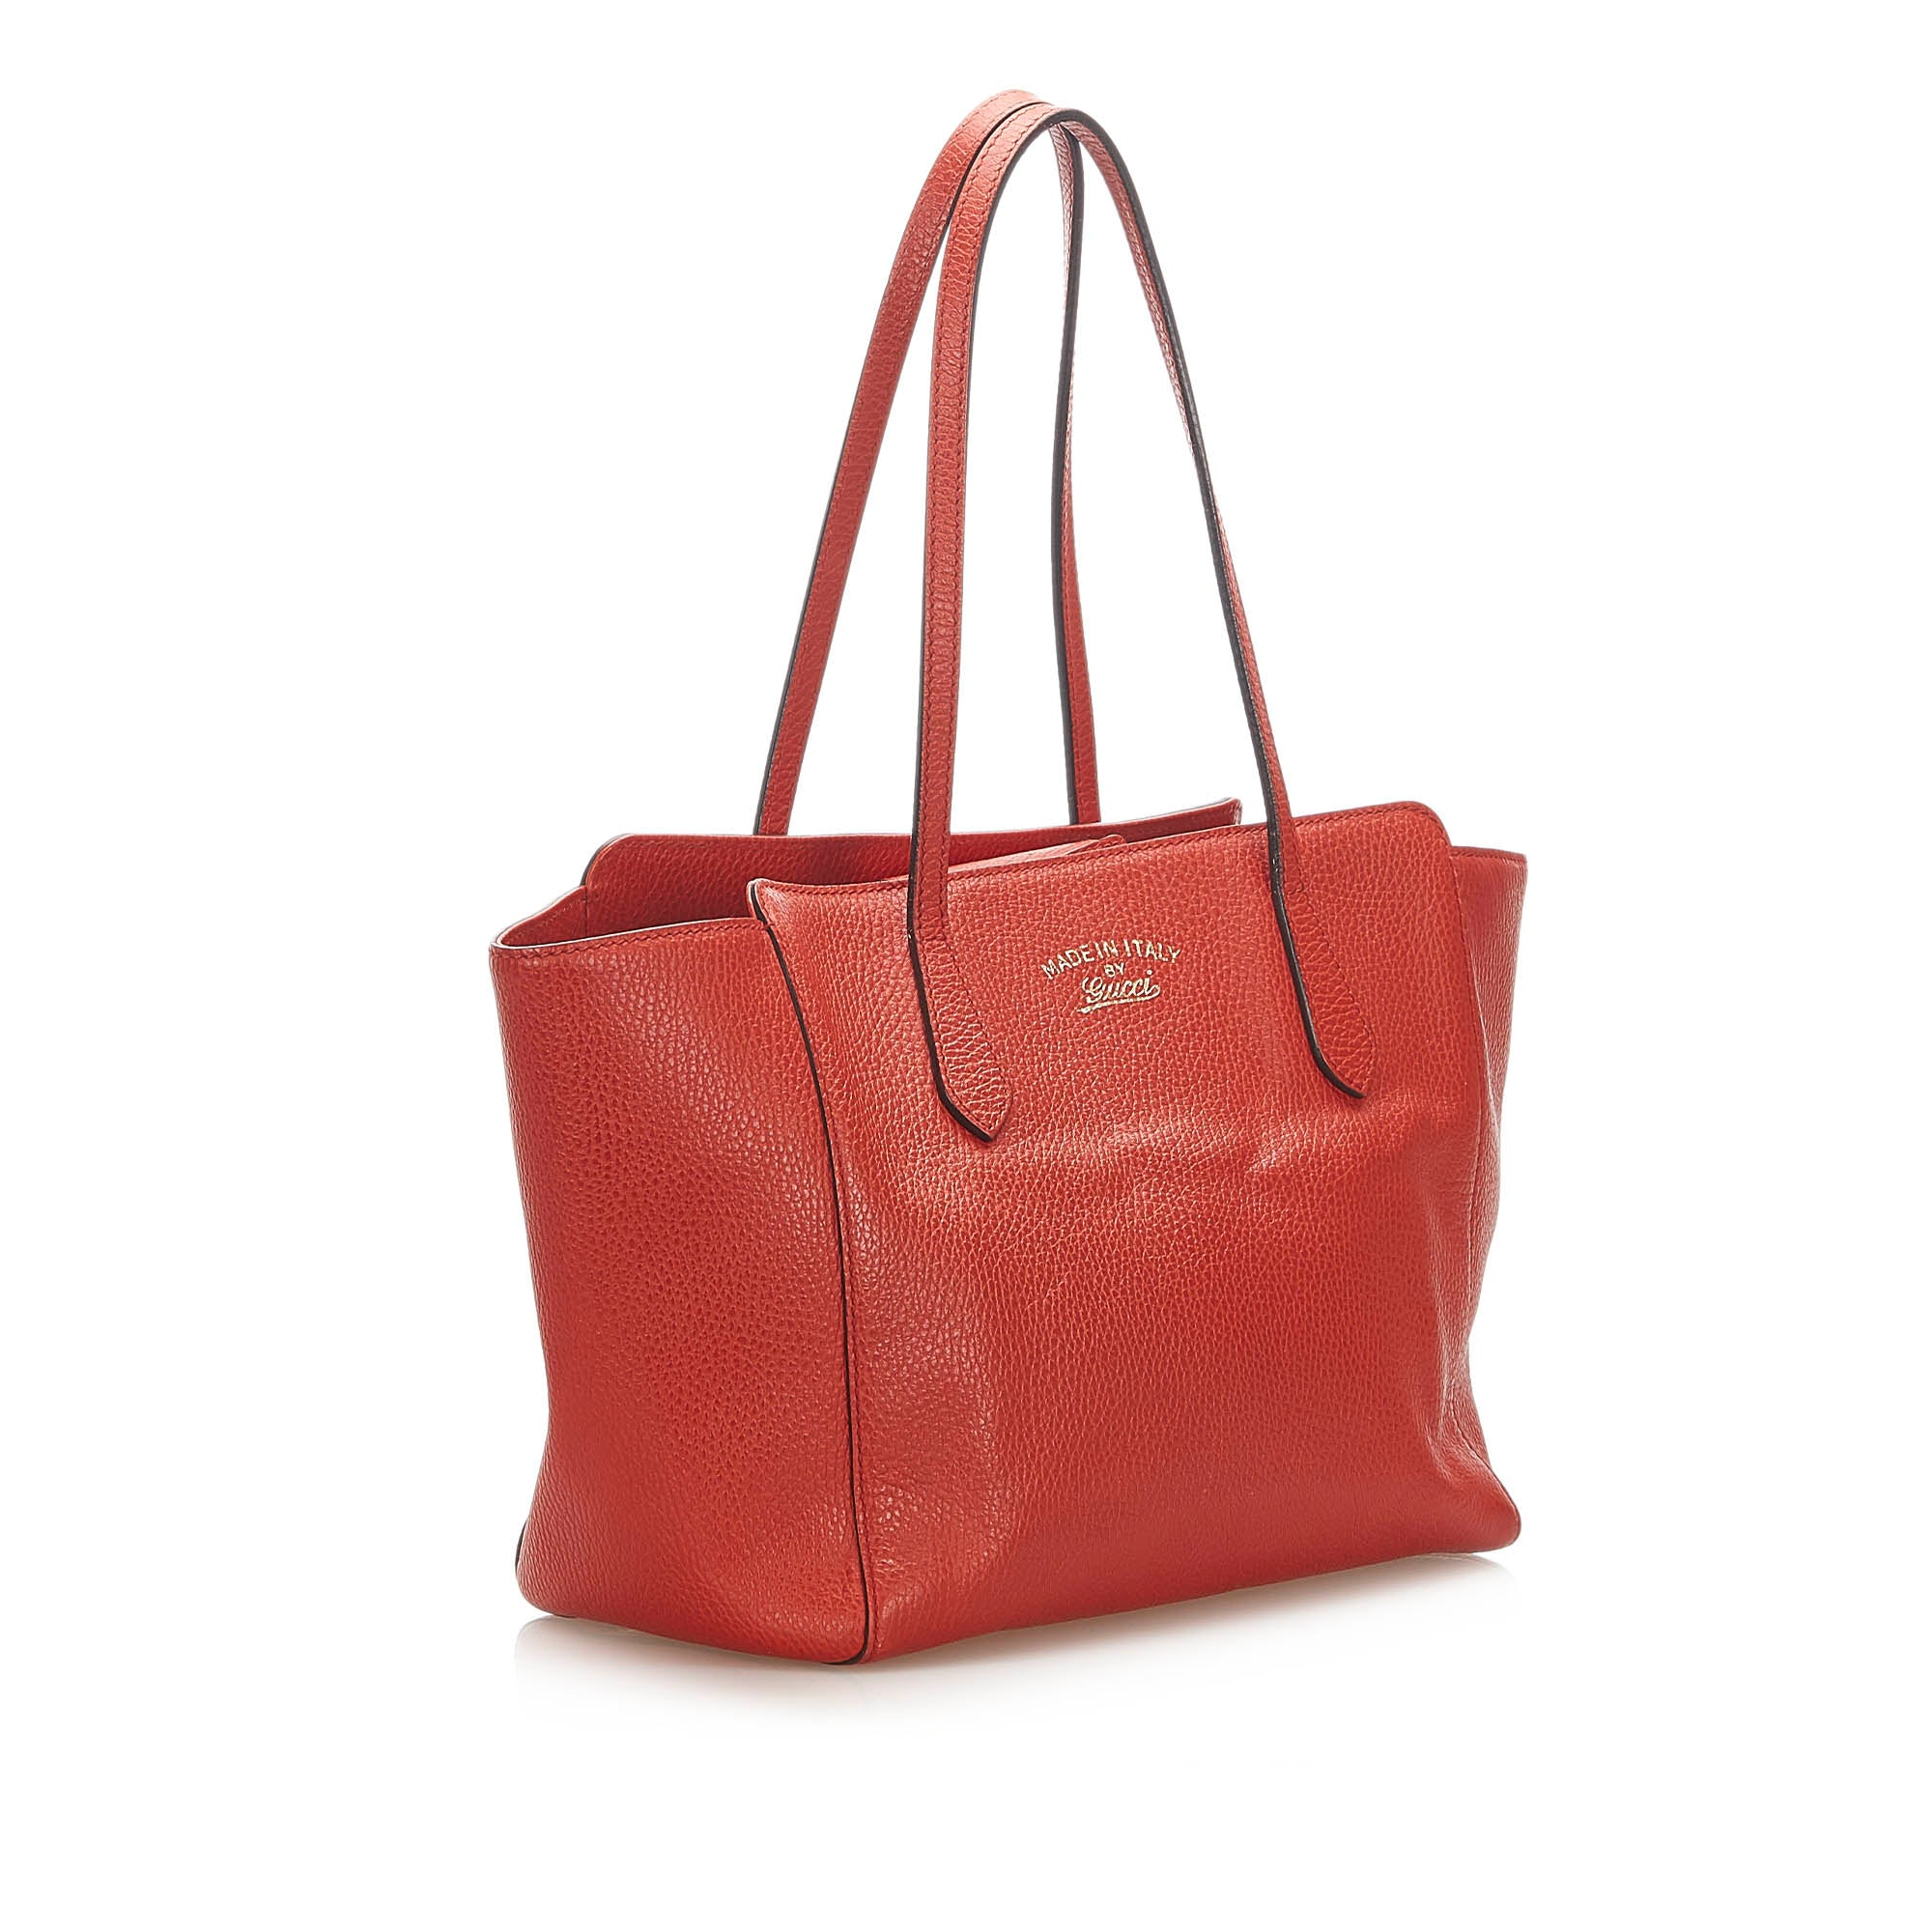 Gucci Red Swing Leather Tote Bag